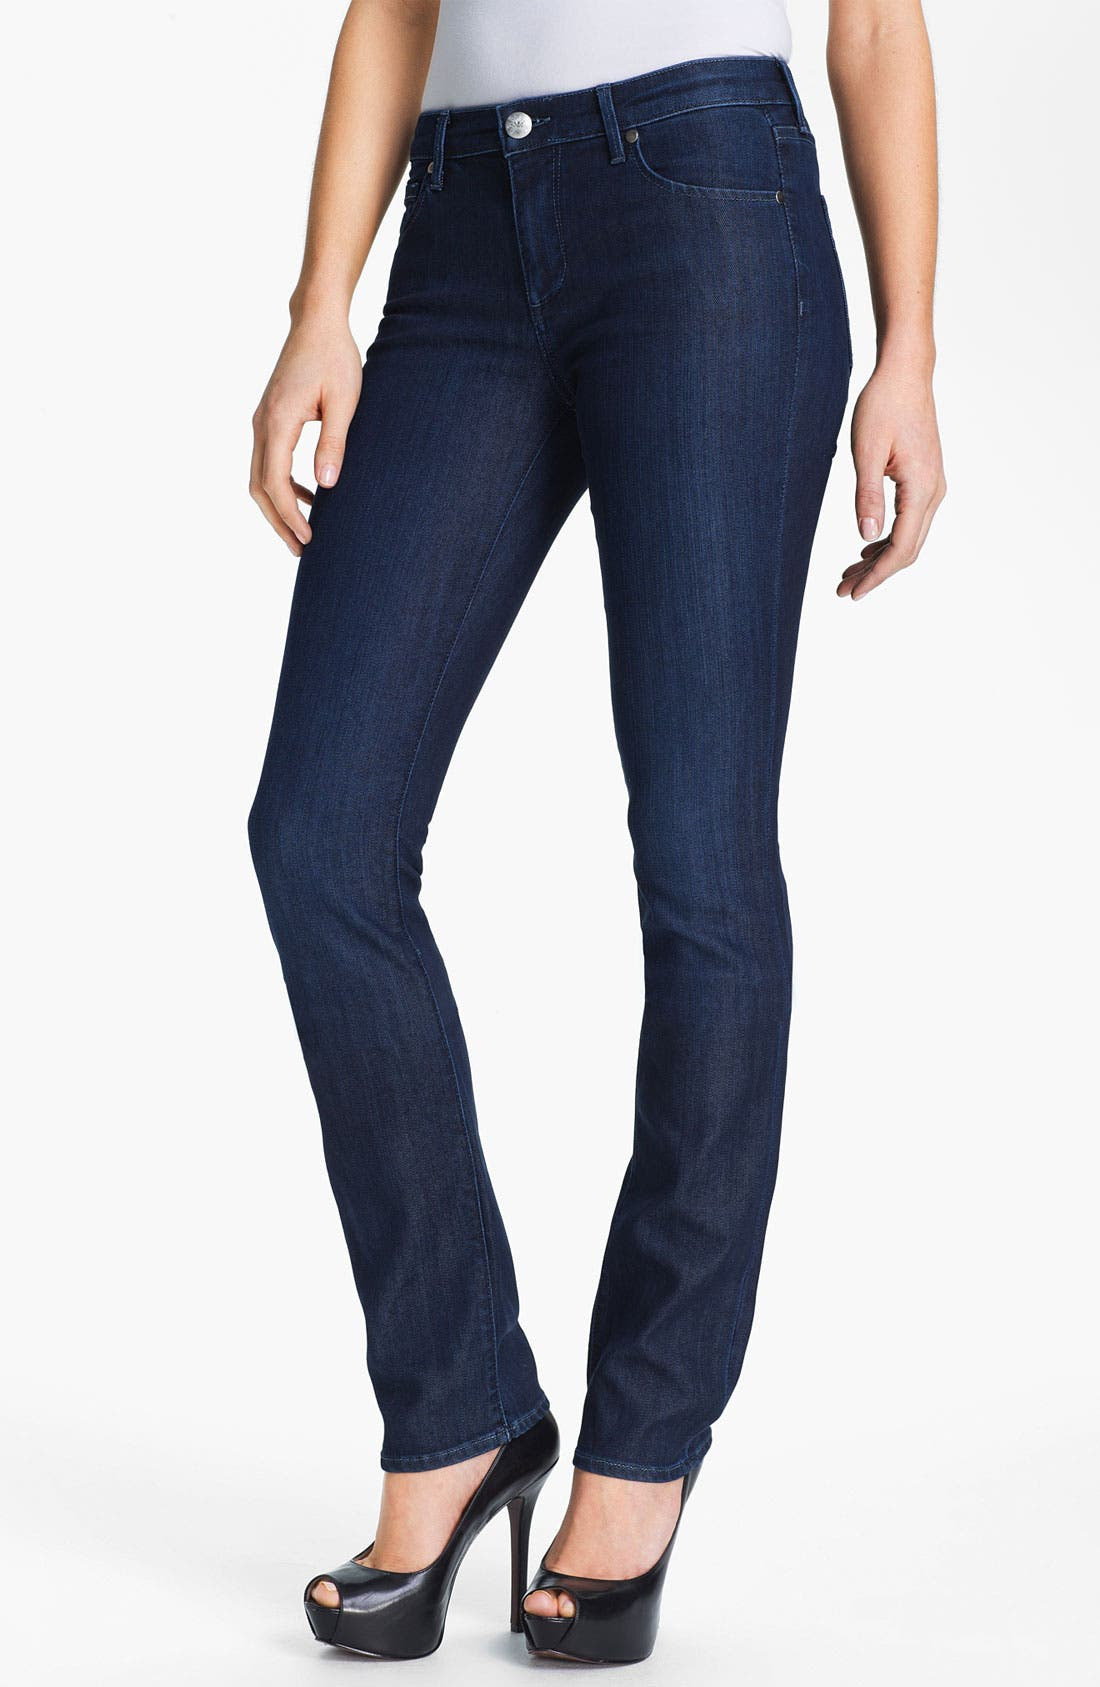 Alternate Image 1 Selected - Agave 'Athena' Straight Leg Jeans (Sea Shore) (Online Exclusive)